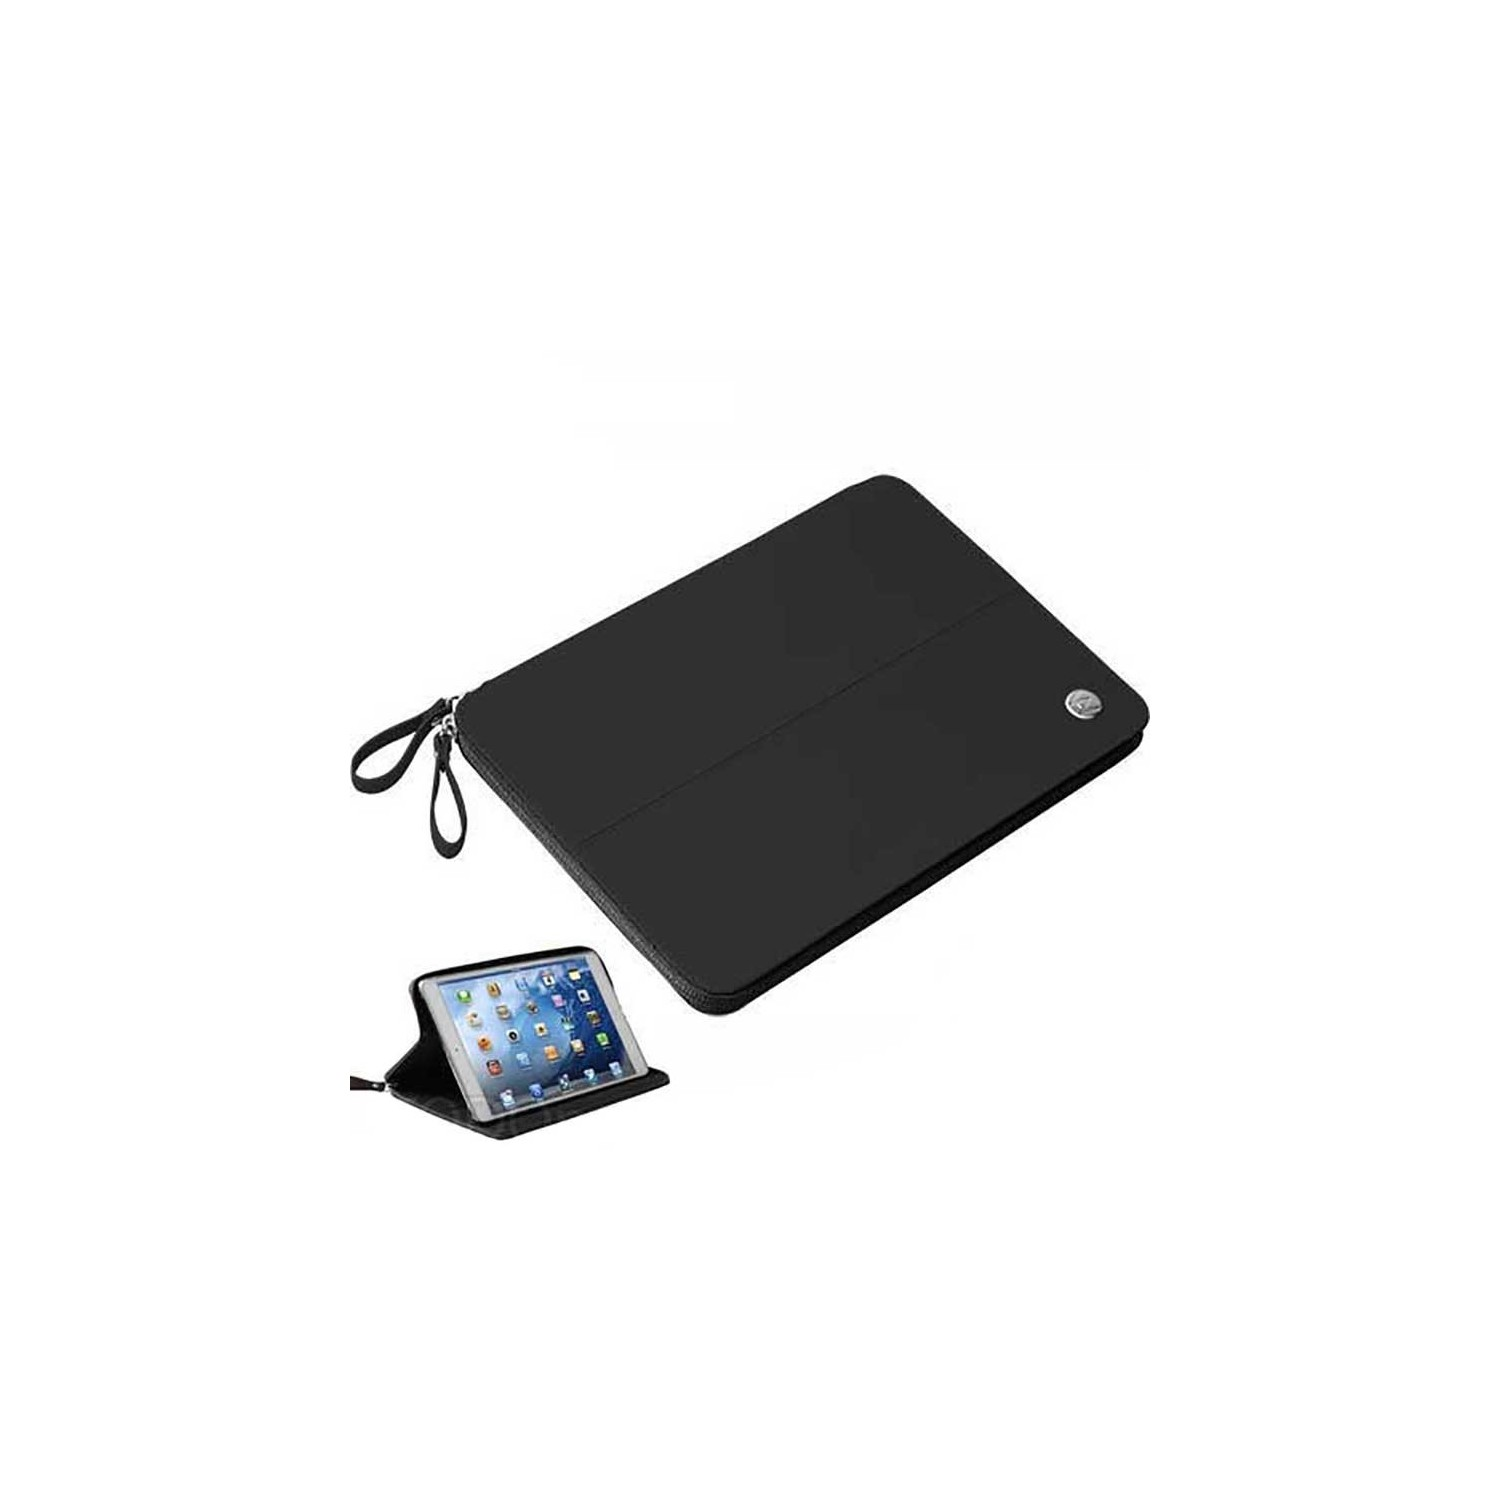 Case - Walk on Water Drop Off Carry Stand Case for iPad Air - Black